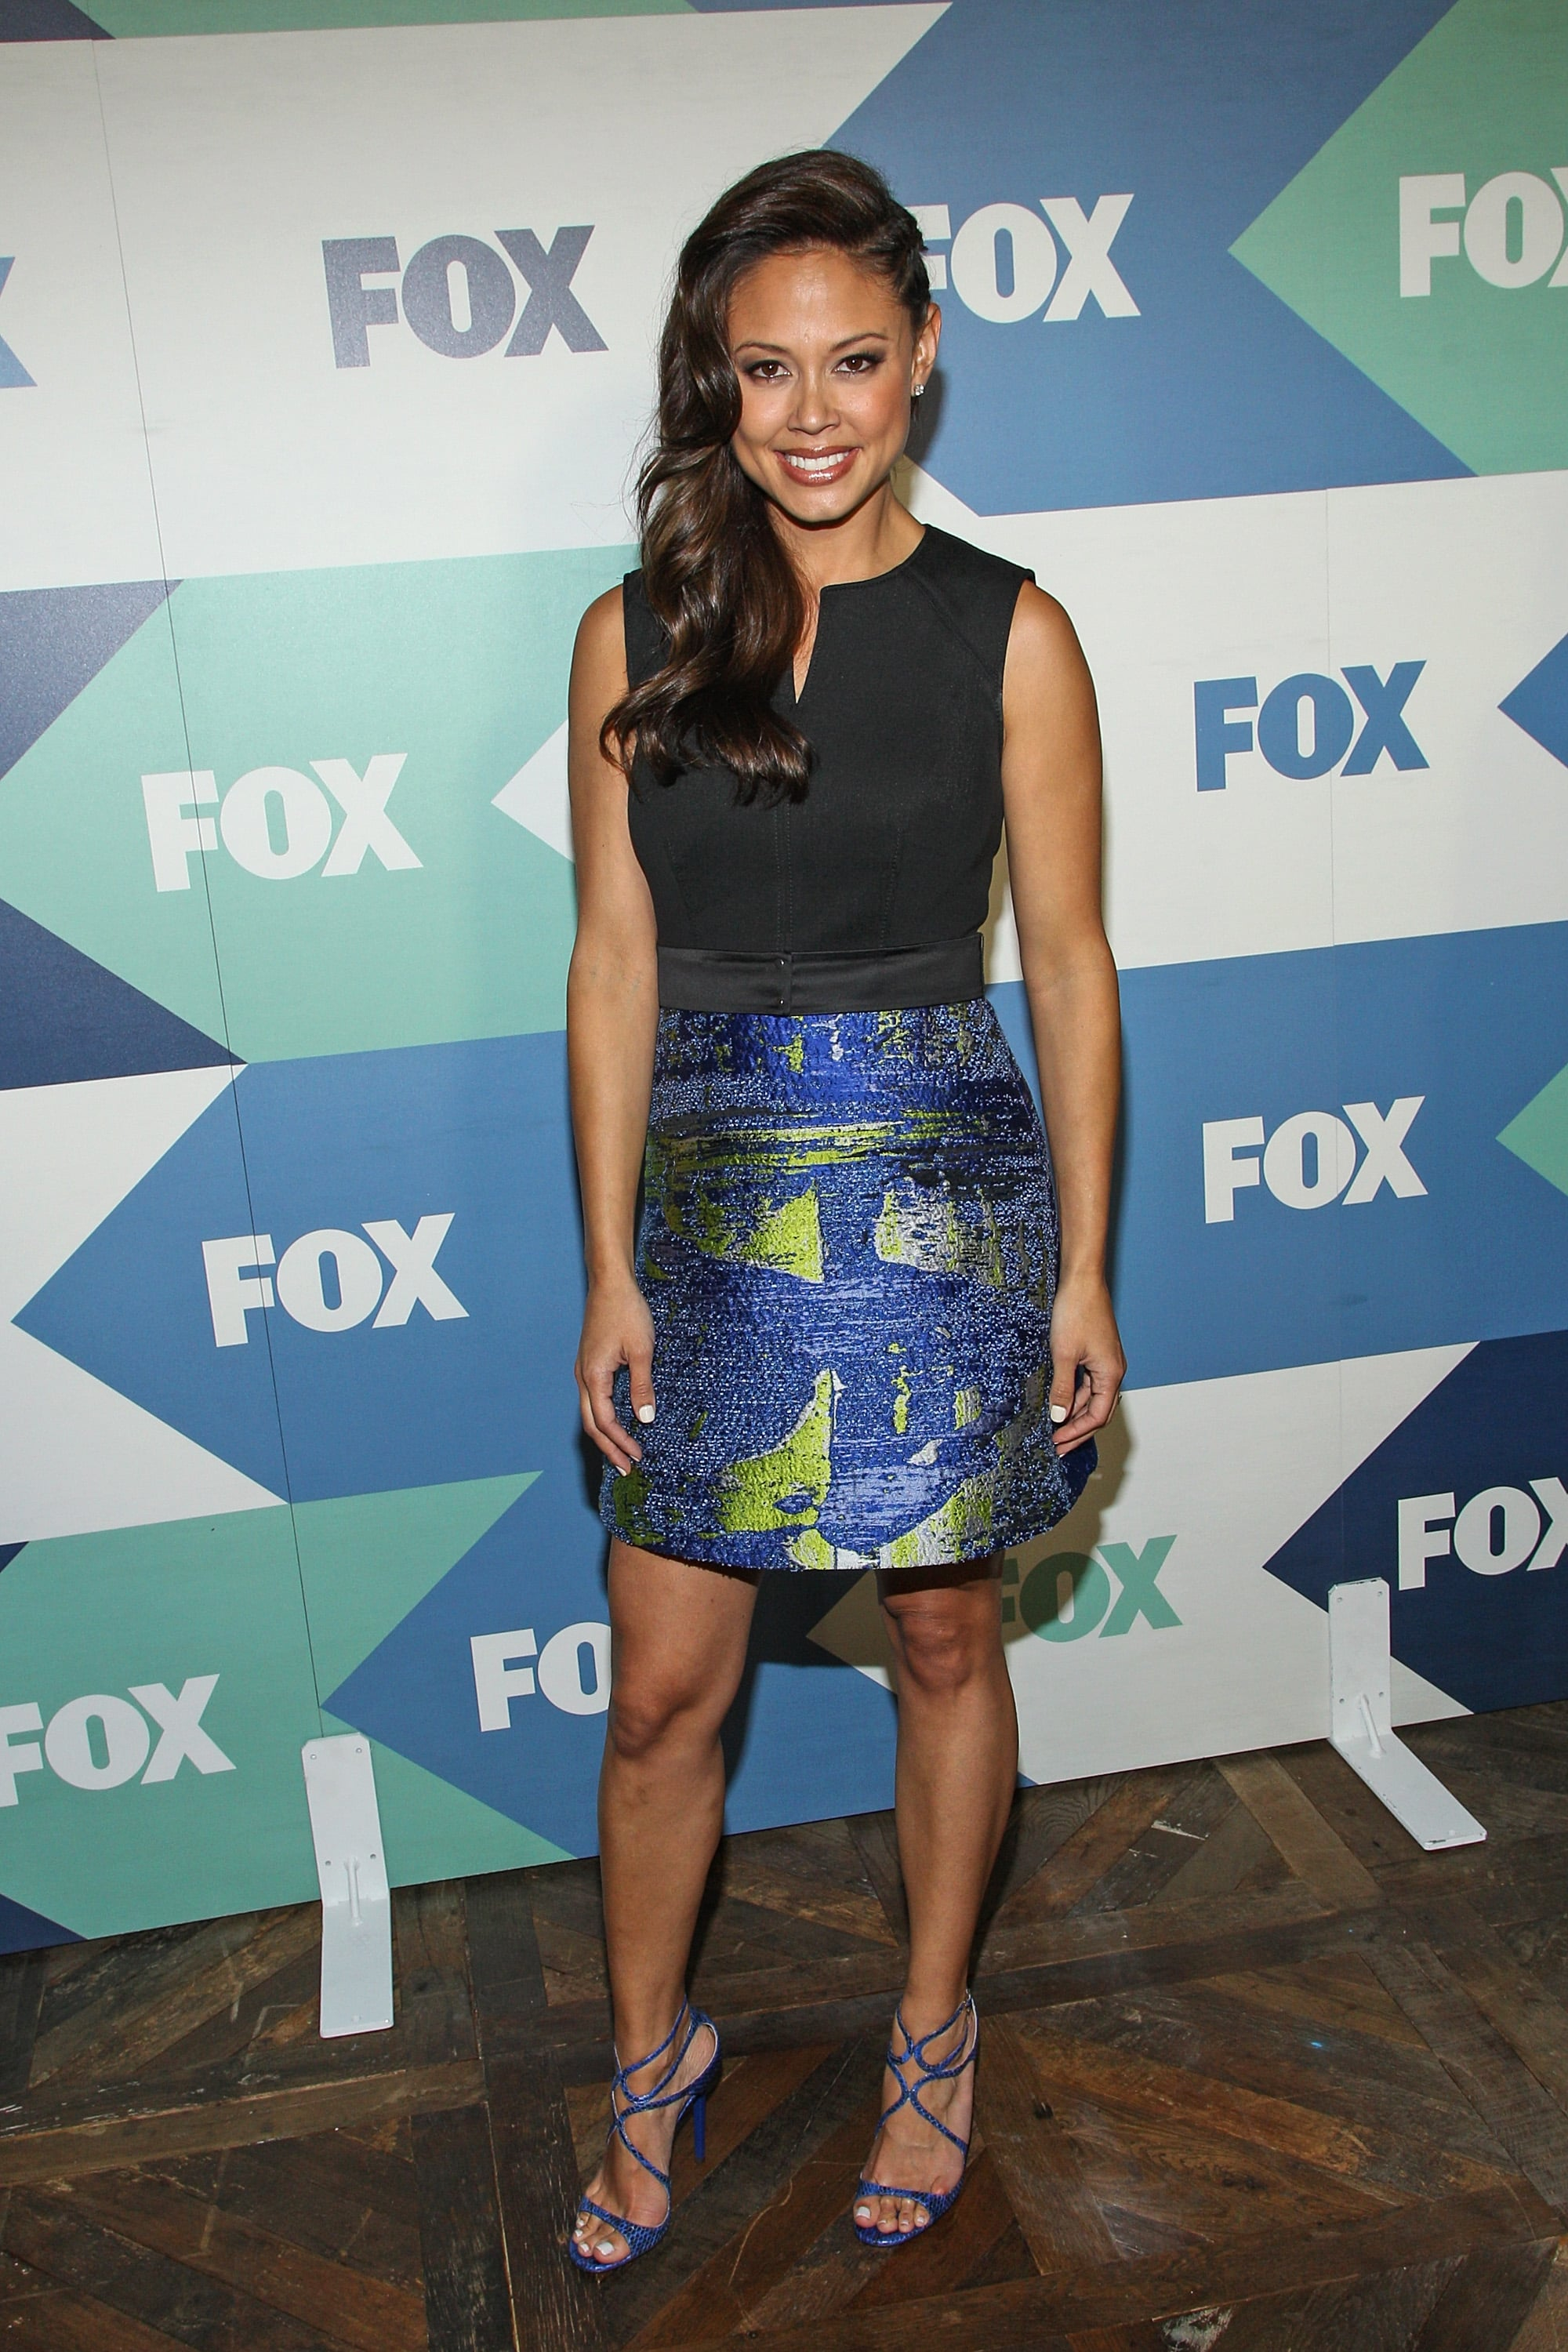 Vanessa Lachey was in attendance at the TCA Press Tour's Fox All-Star Party.